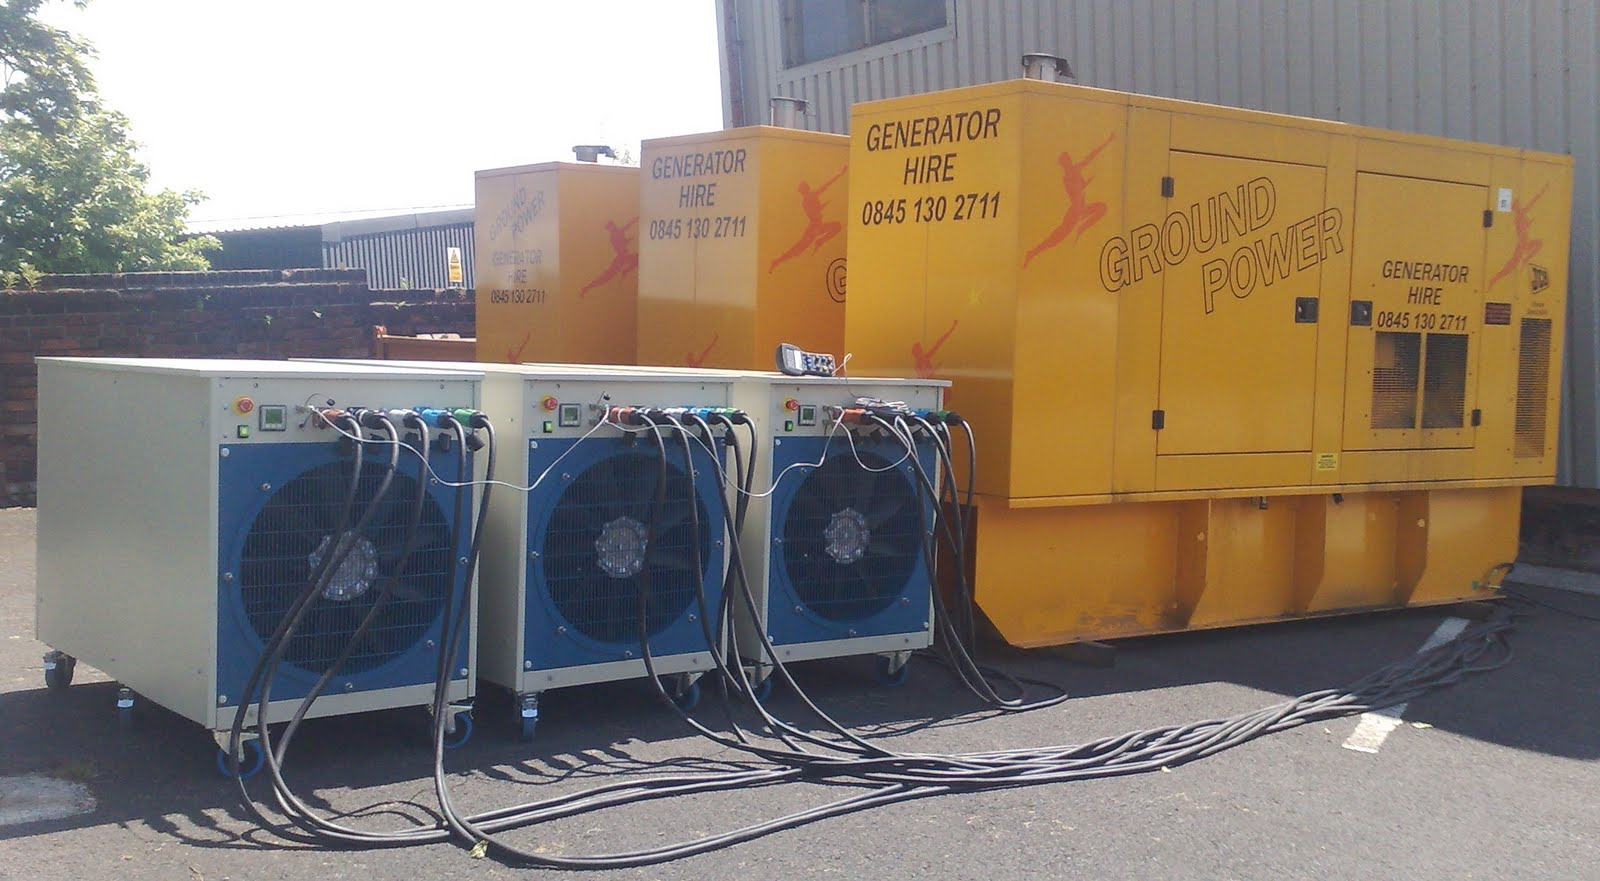 Load Bank blog from Hillstone Products: Generator testing using AC load banks